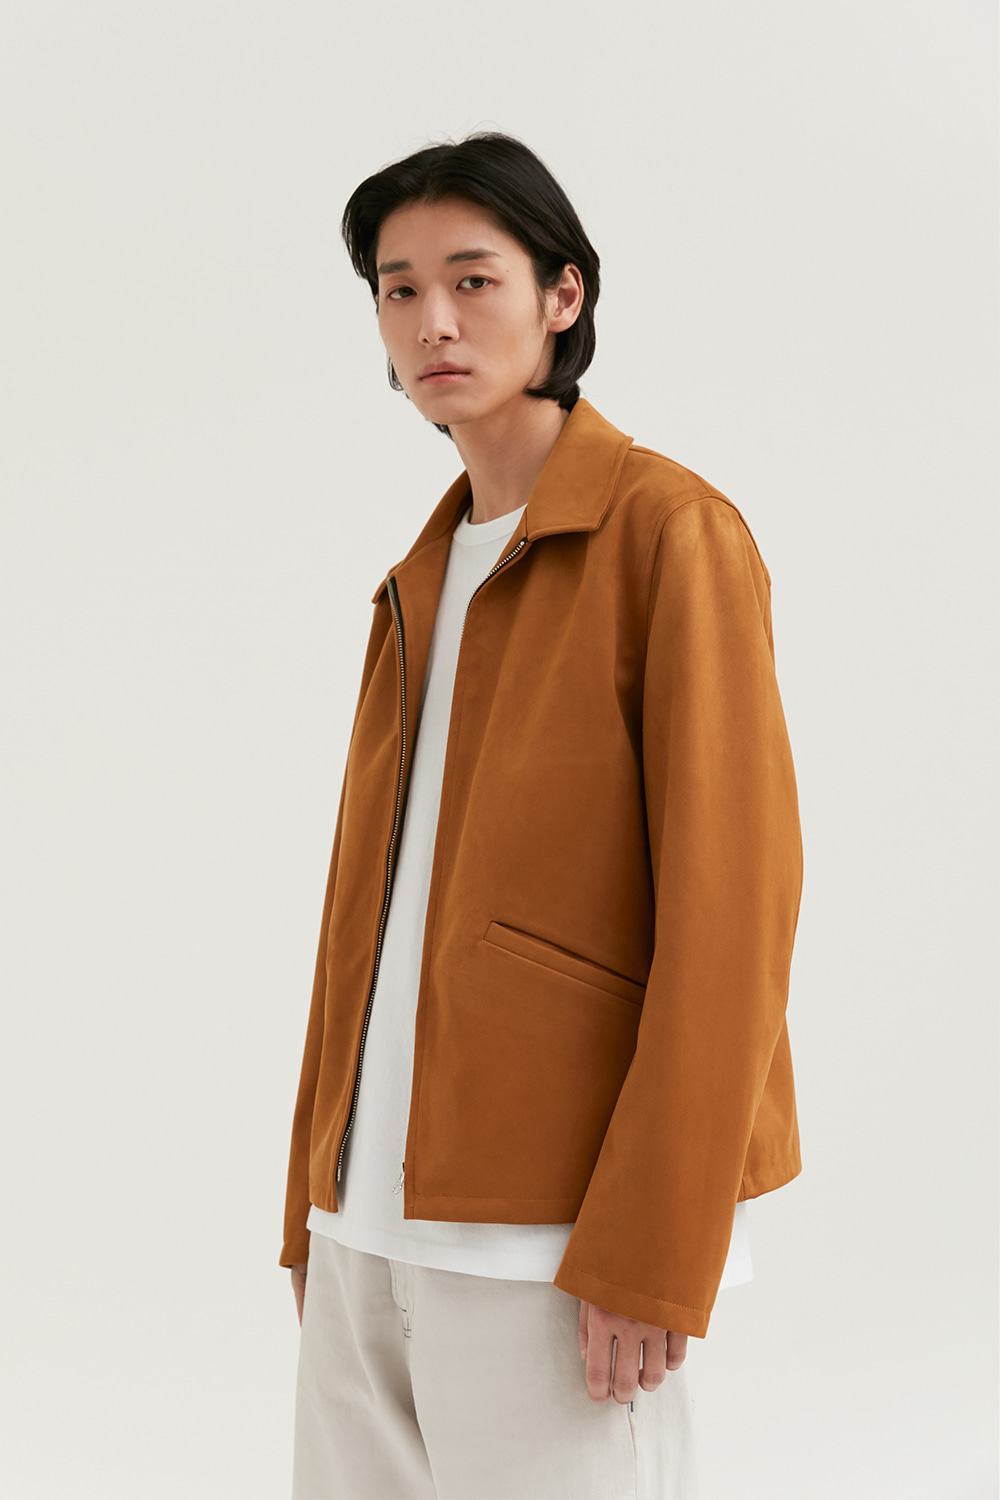 Minimal Leather Jacket Men [Dark Beige]